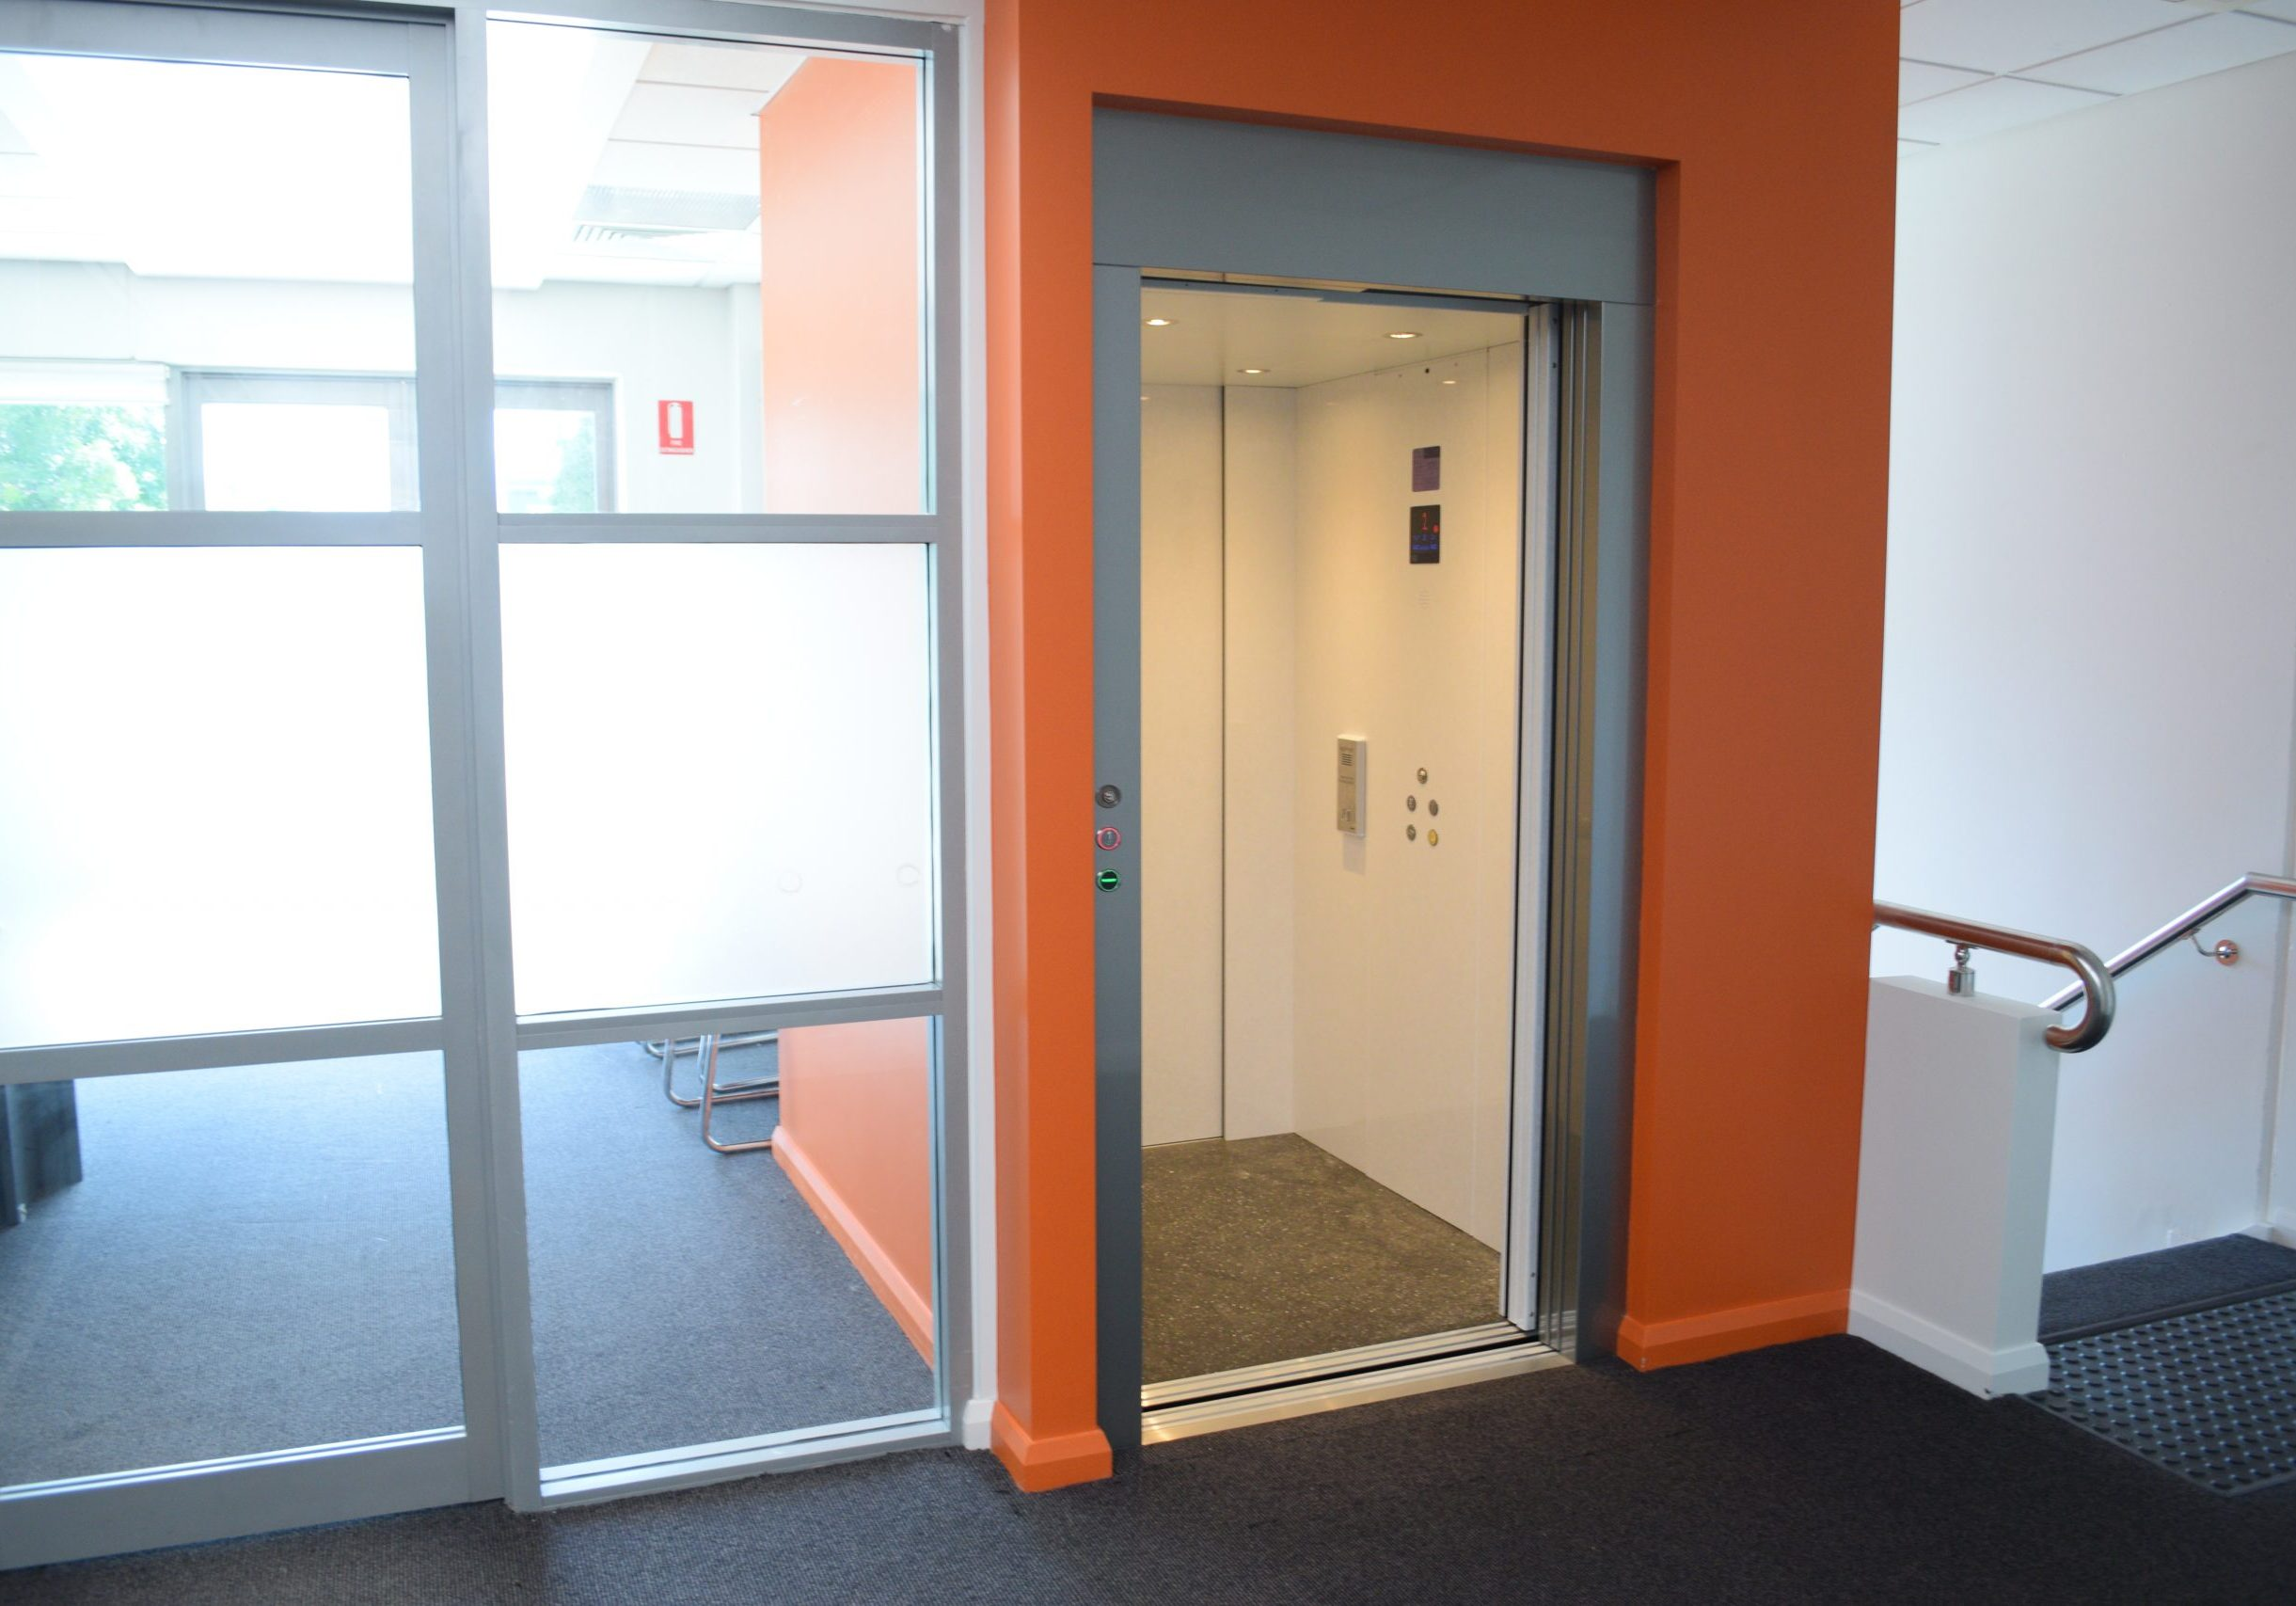 an open door elevator with an orange shaft, silver metal frame and white cabin walls.